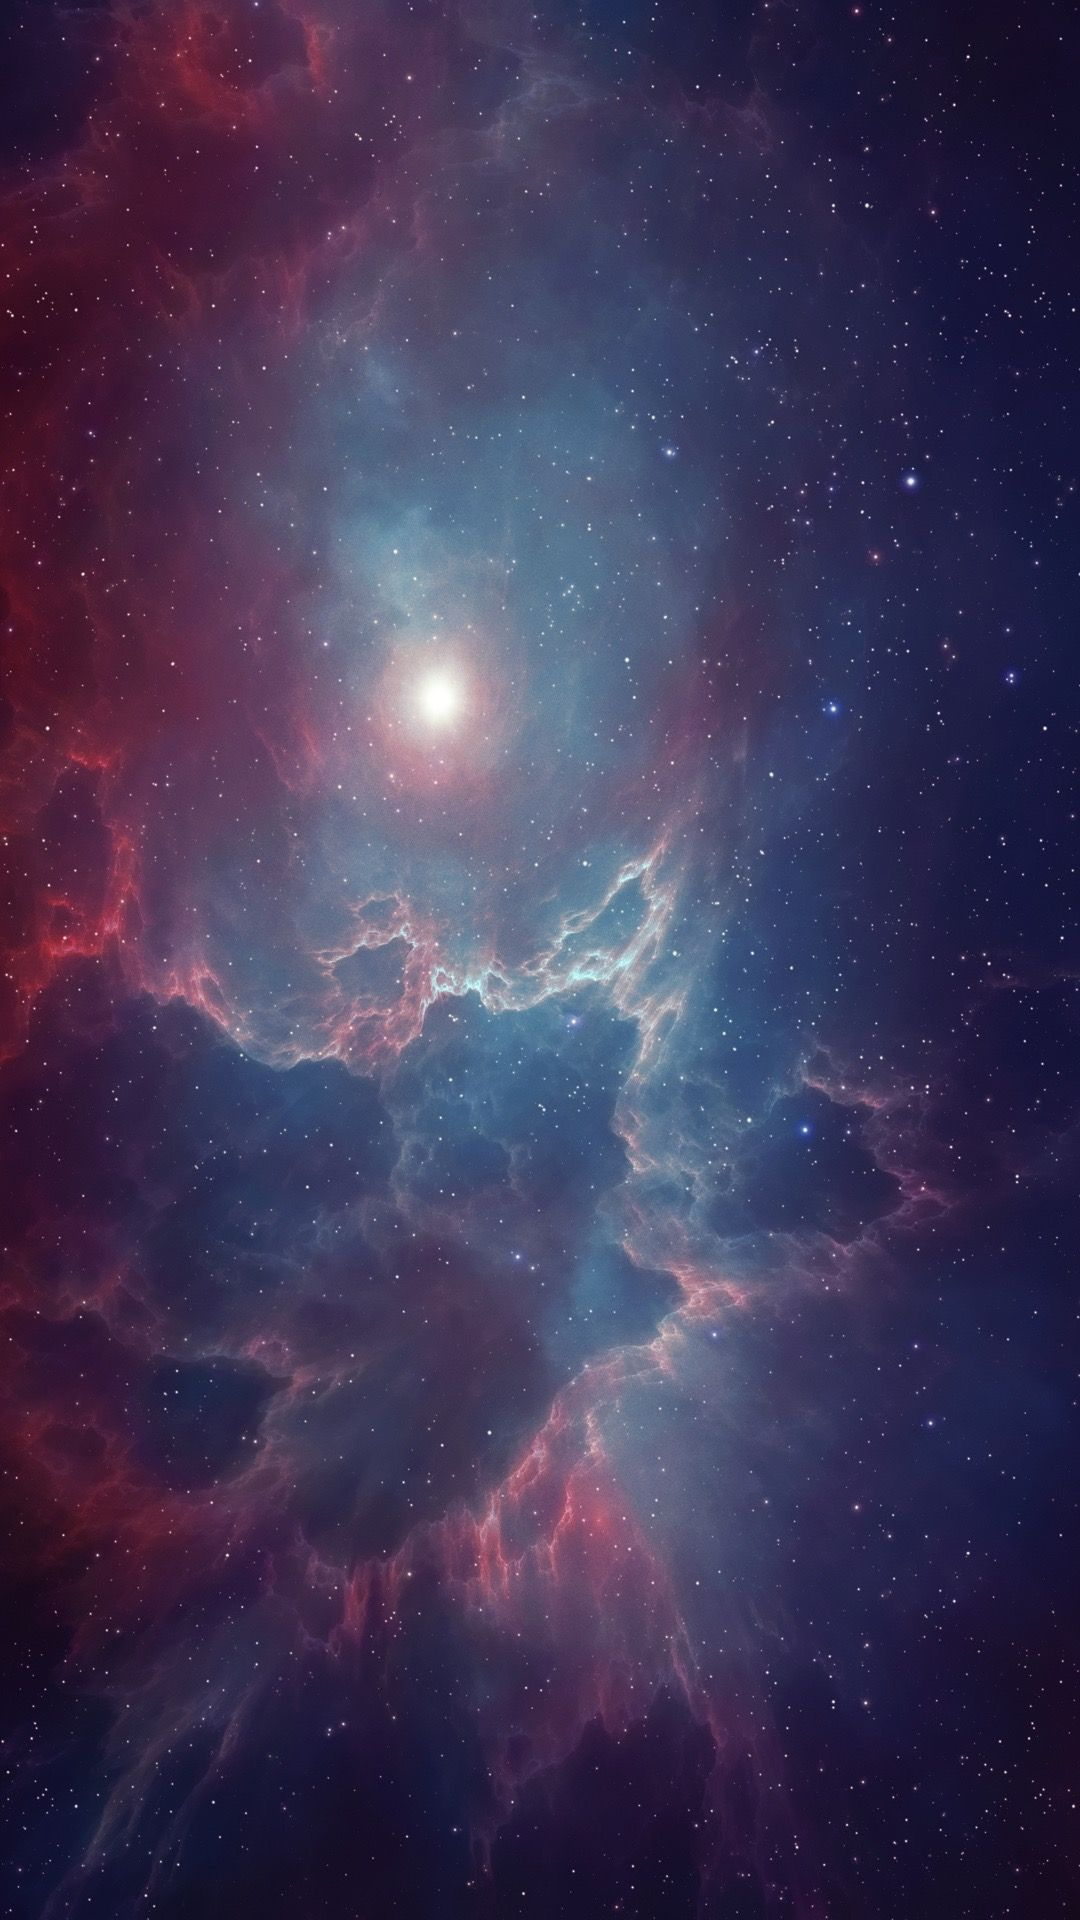 Pin By Mike Mota On Iwallpapers Wallpaper Space Galaxy Wallpaper Space Artwork